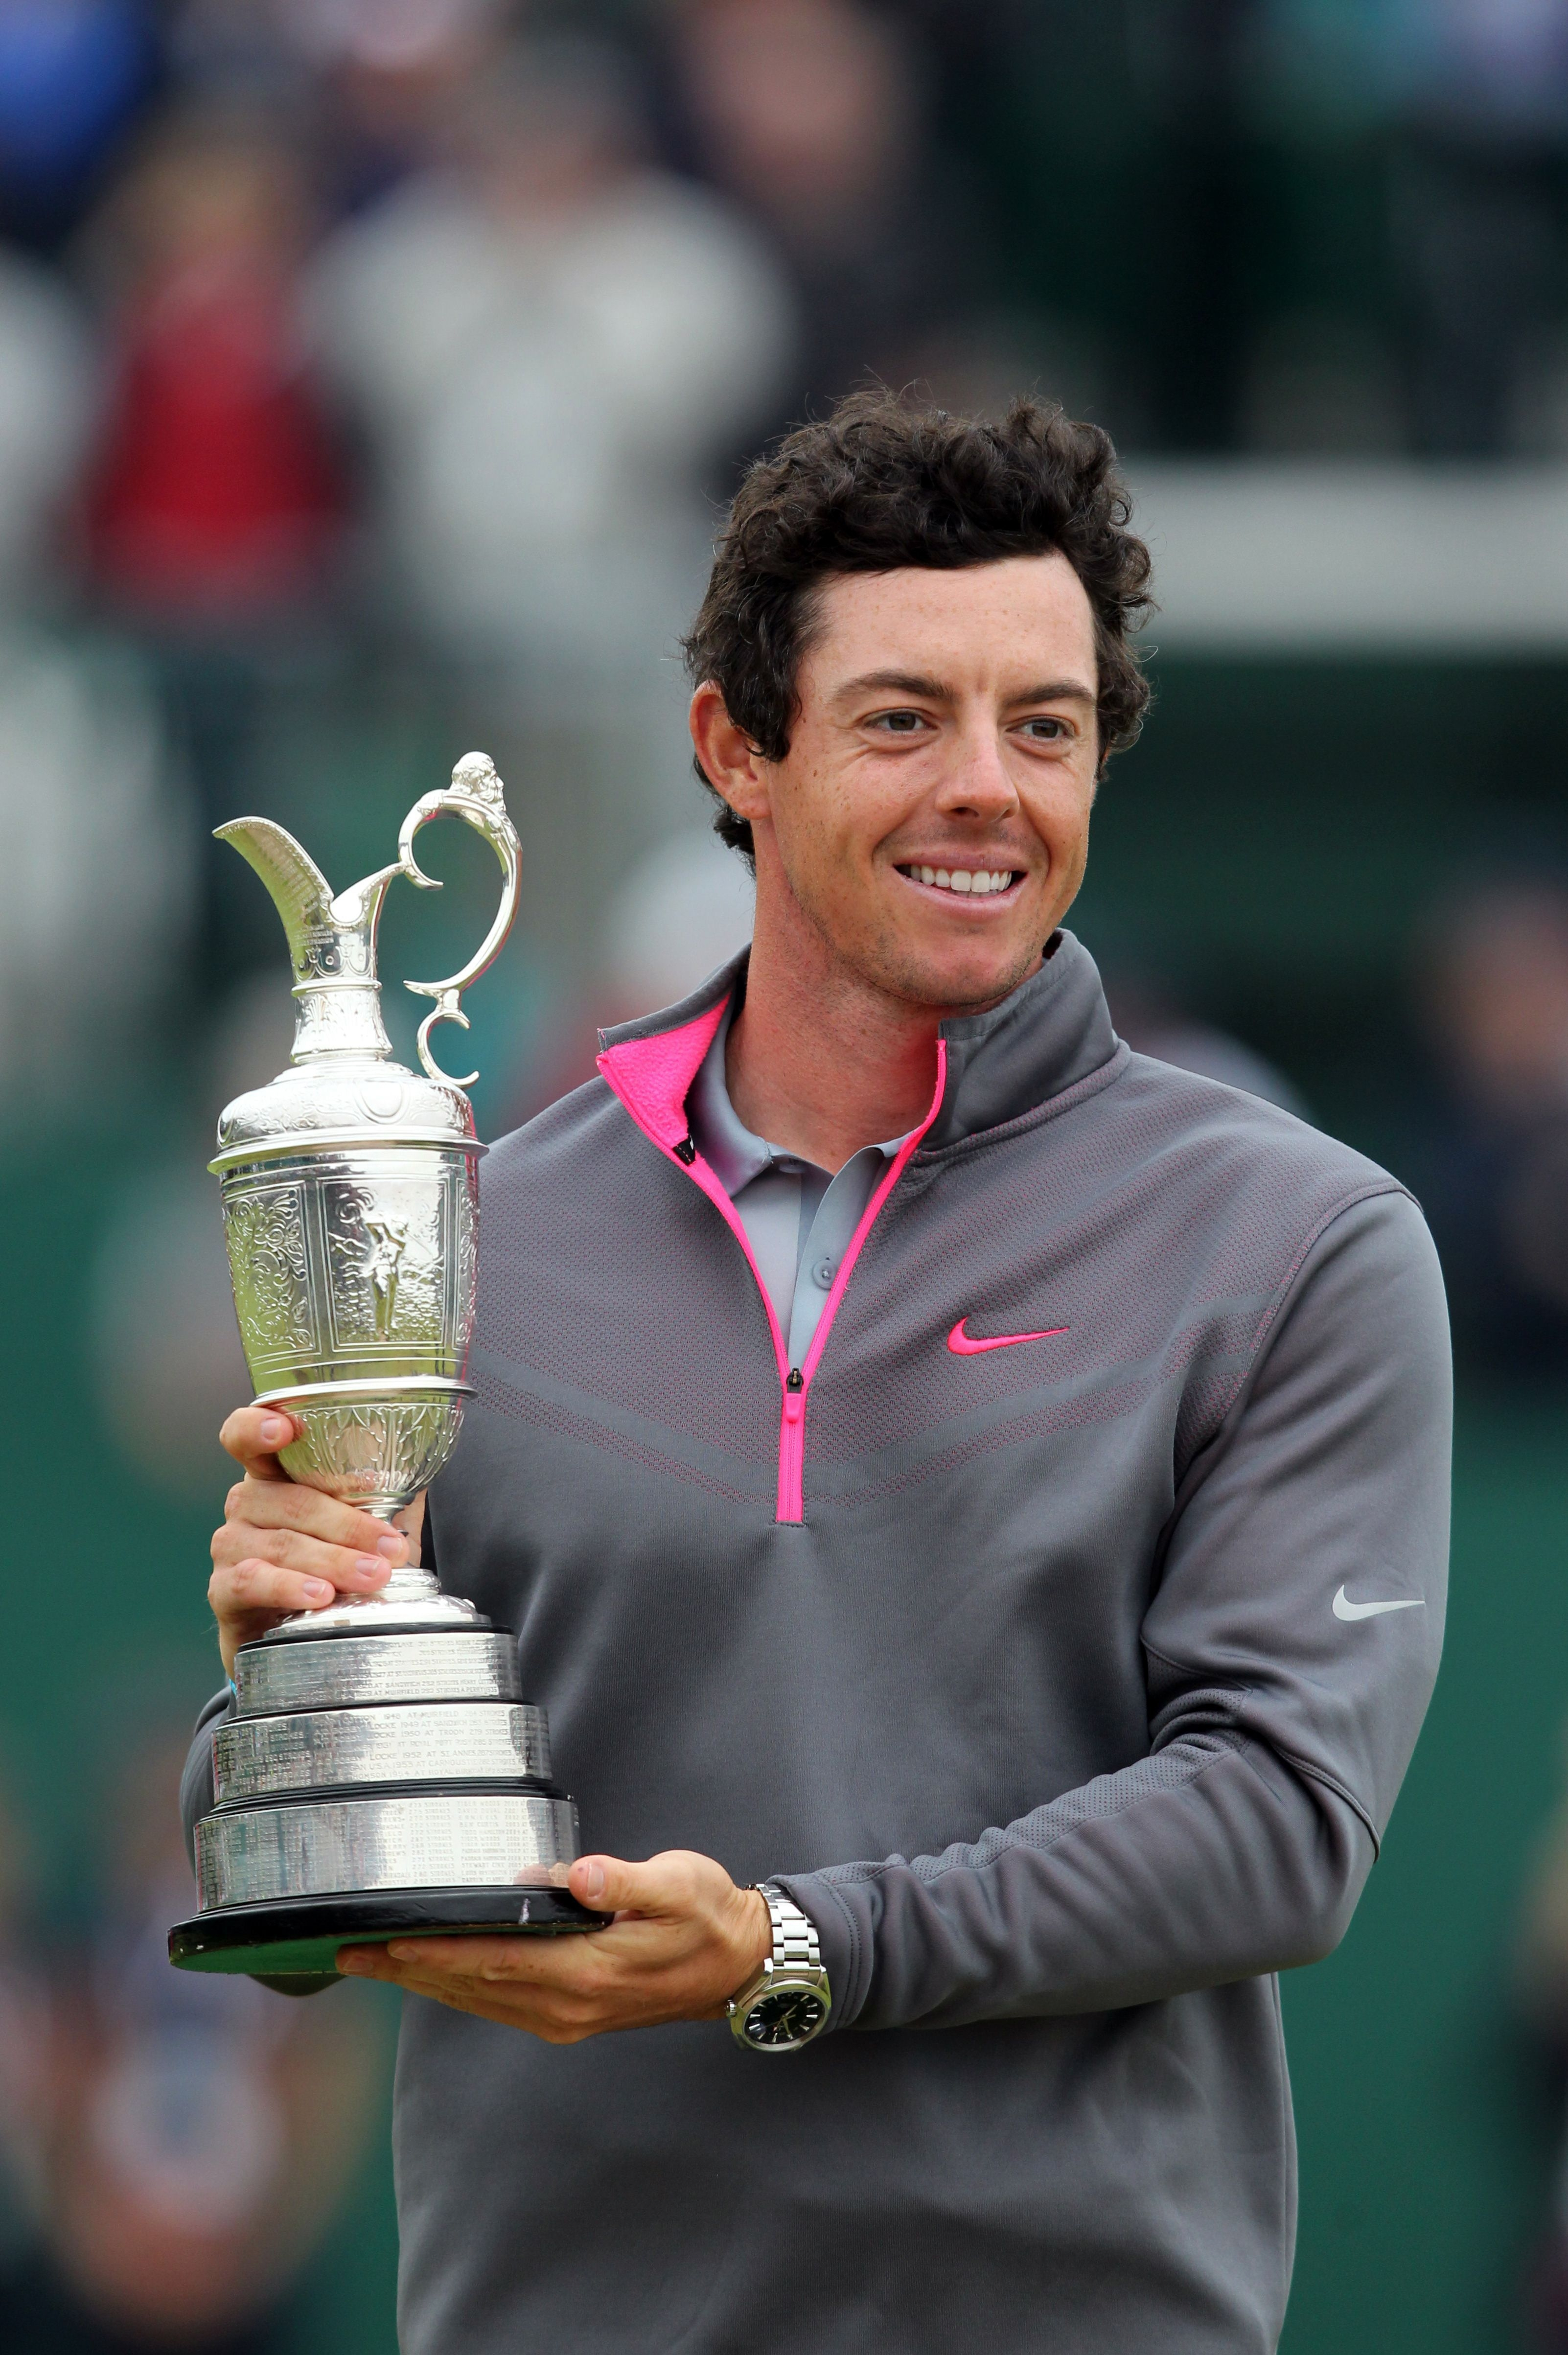 Rory McIlroy holds the Claret Jug after his win in the British Open on Sunday.